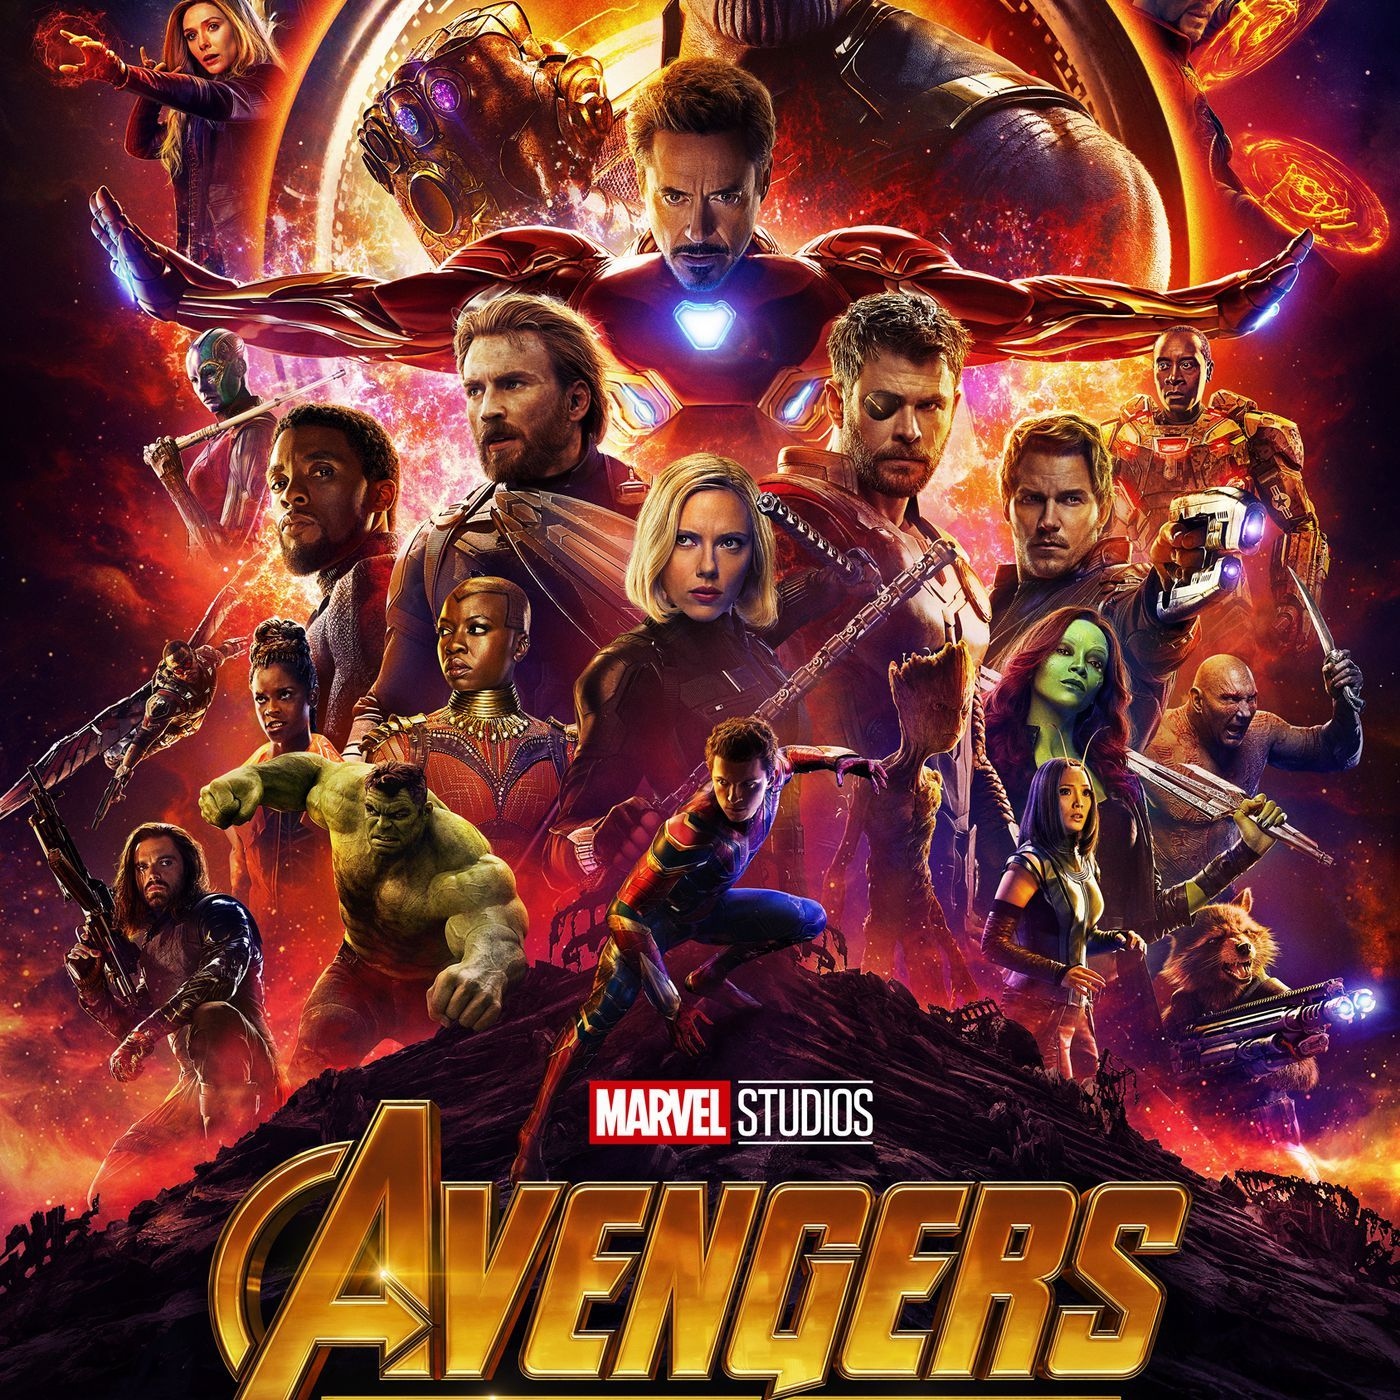 Avengers Endgame 2019 Hindi Dubbed Full Movie Watch Online Hd